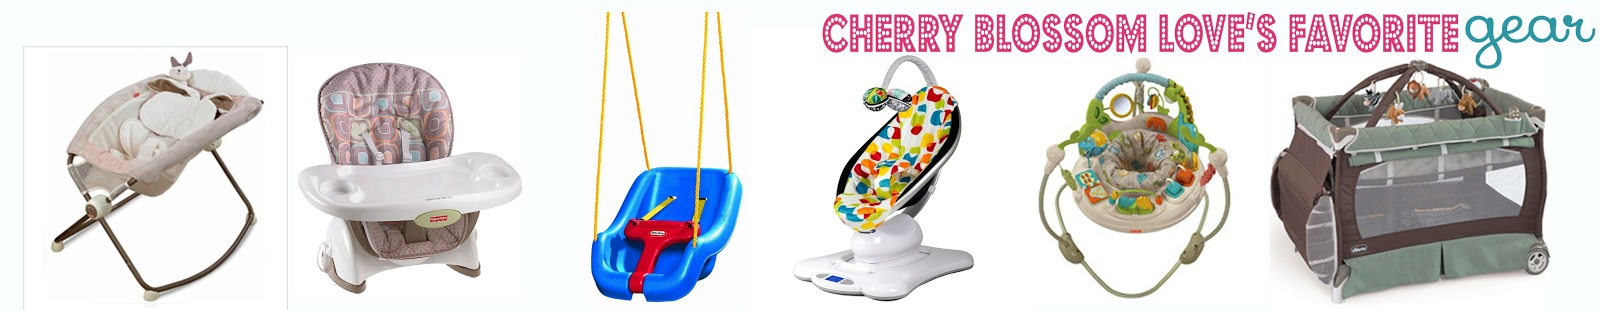 Product Reviews Cherry Blossom Love